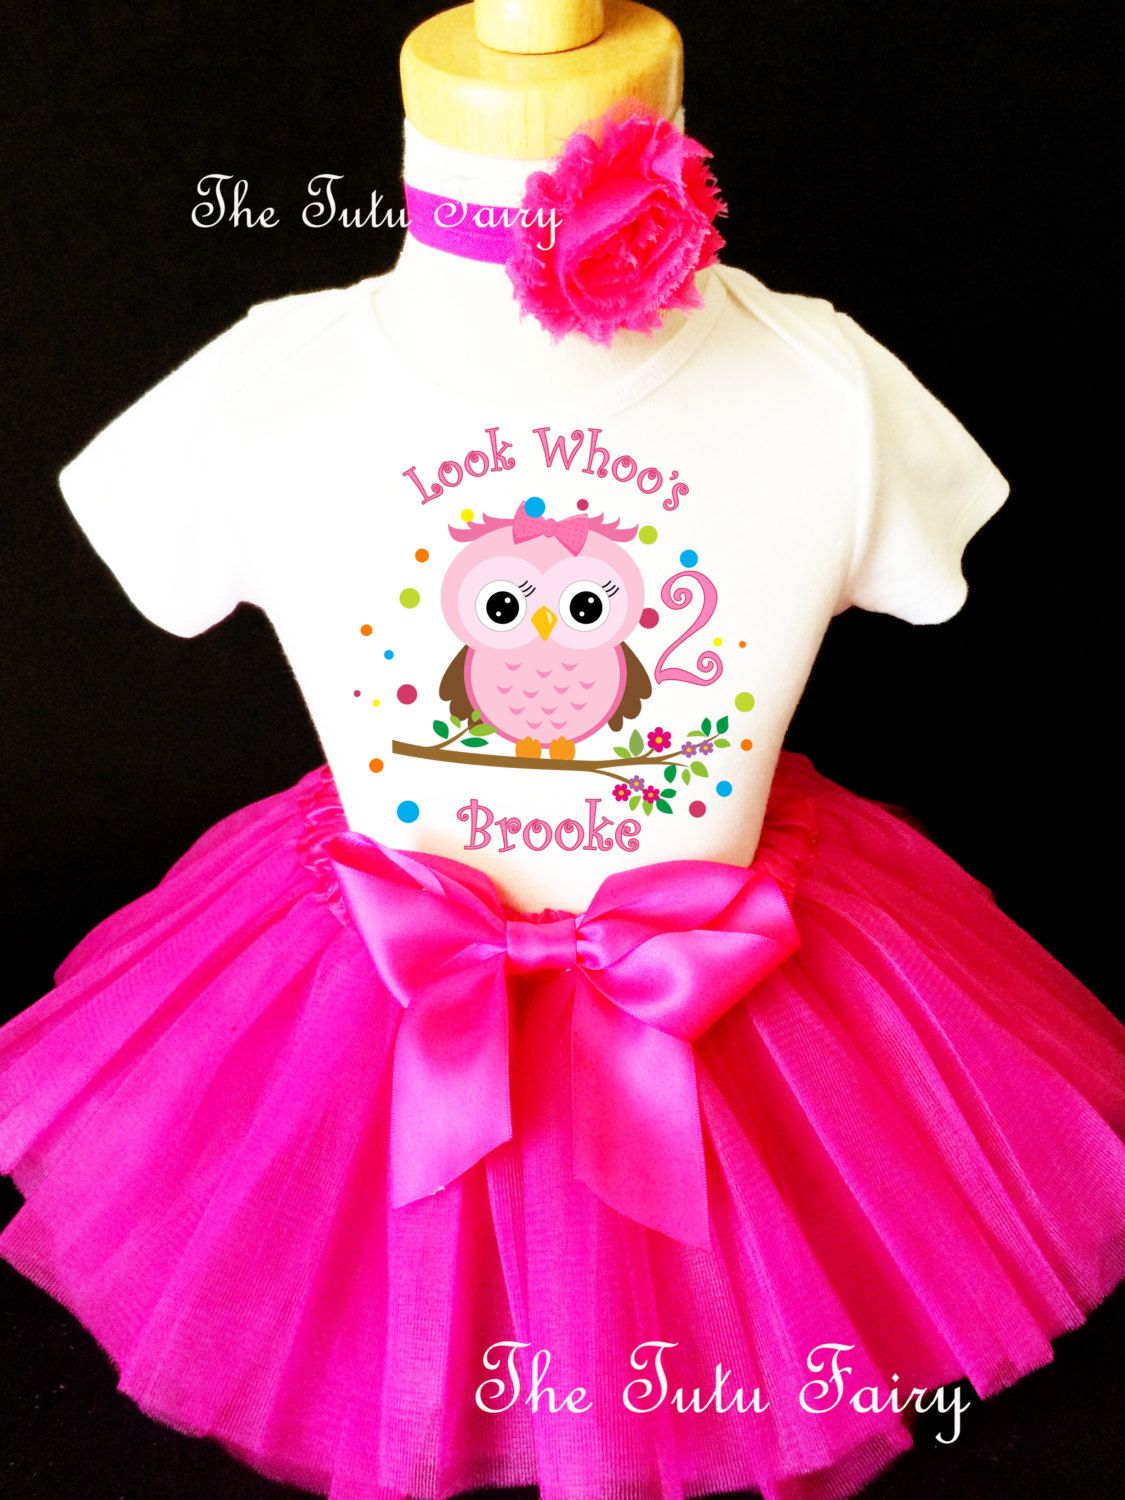 fb1a5c6d5 Owl Look WhOO's Whos Who's Hot Pink Rainbow Polka Dots 2nd Second Girl  Birthday Tutu Outfit